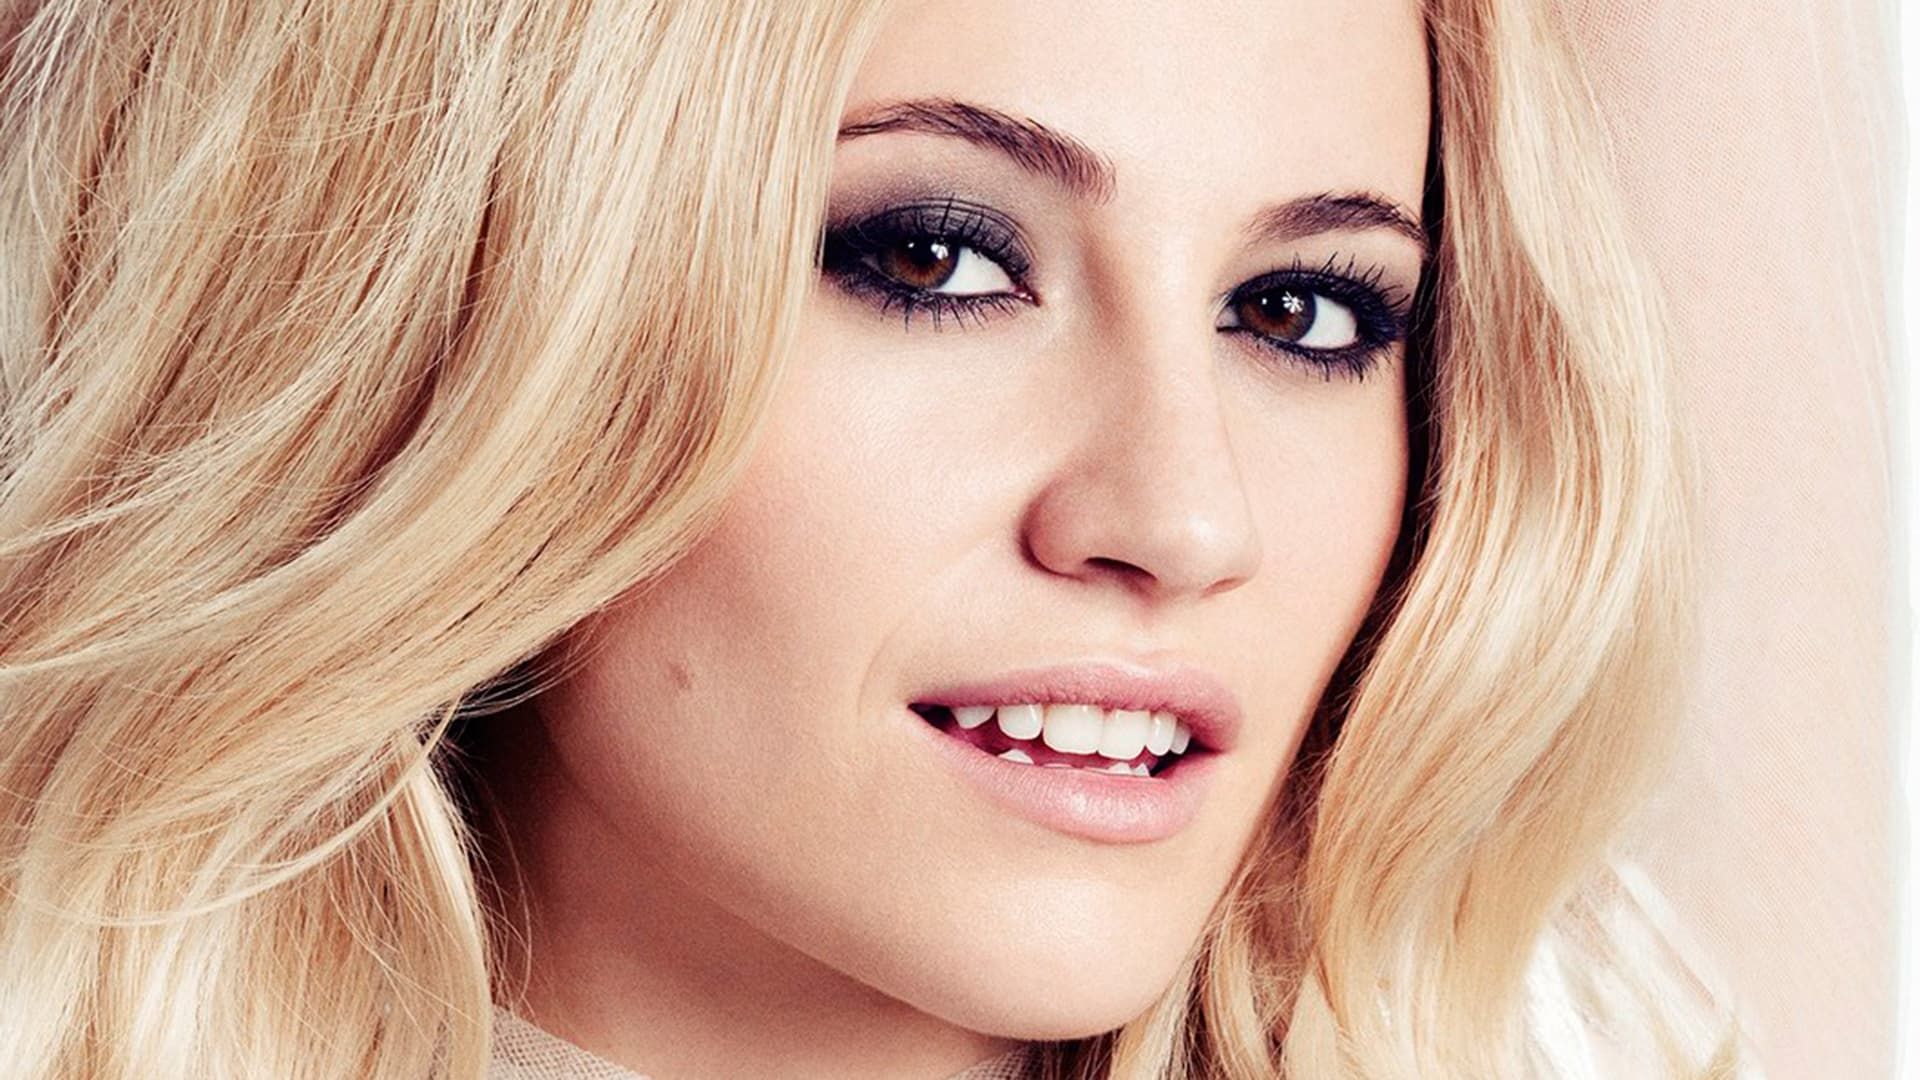 Wallpaper Hd Pixie Lott Wallpapers Hd High Quality Resolution Download